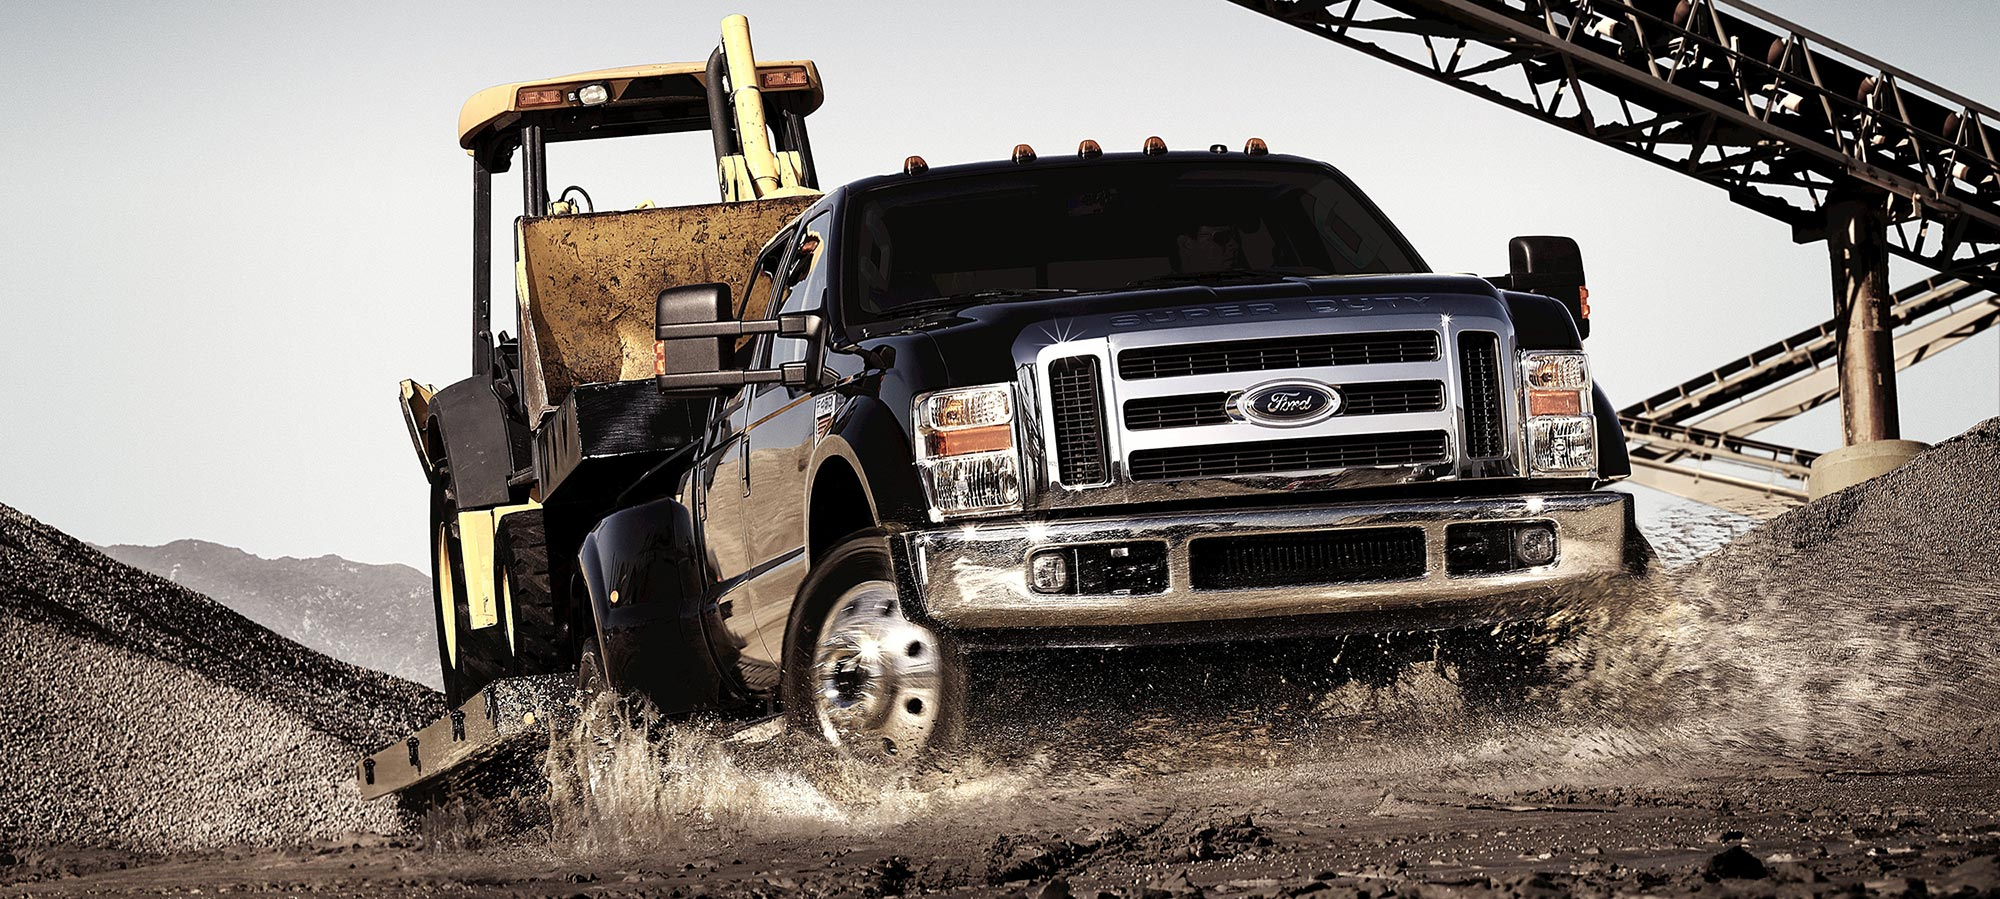 Ford Superduty Truck 2017 Model